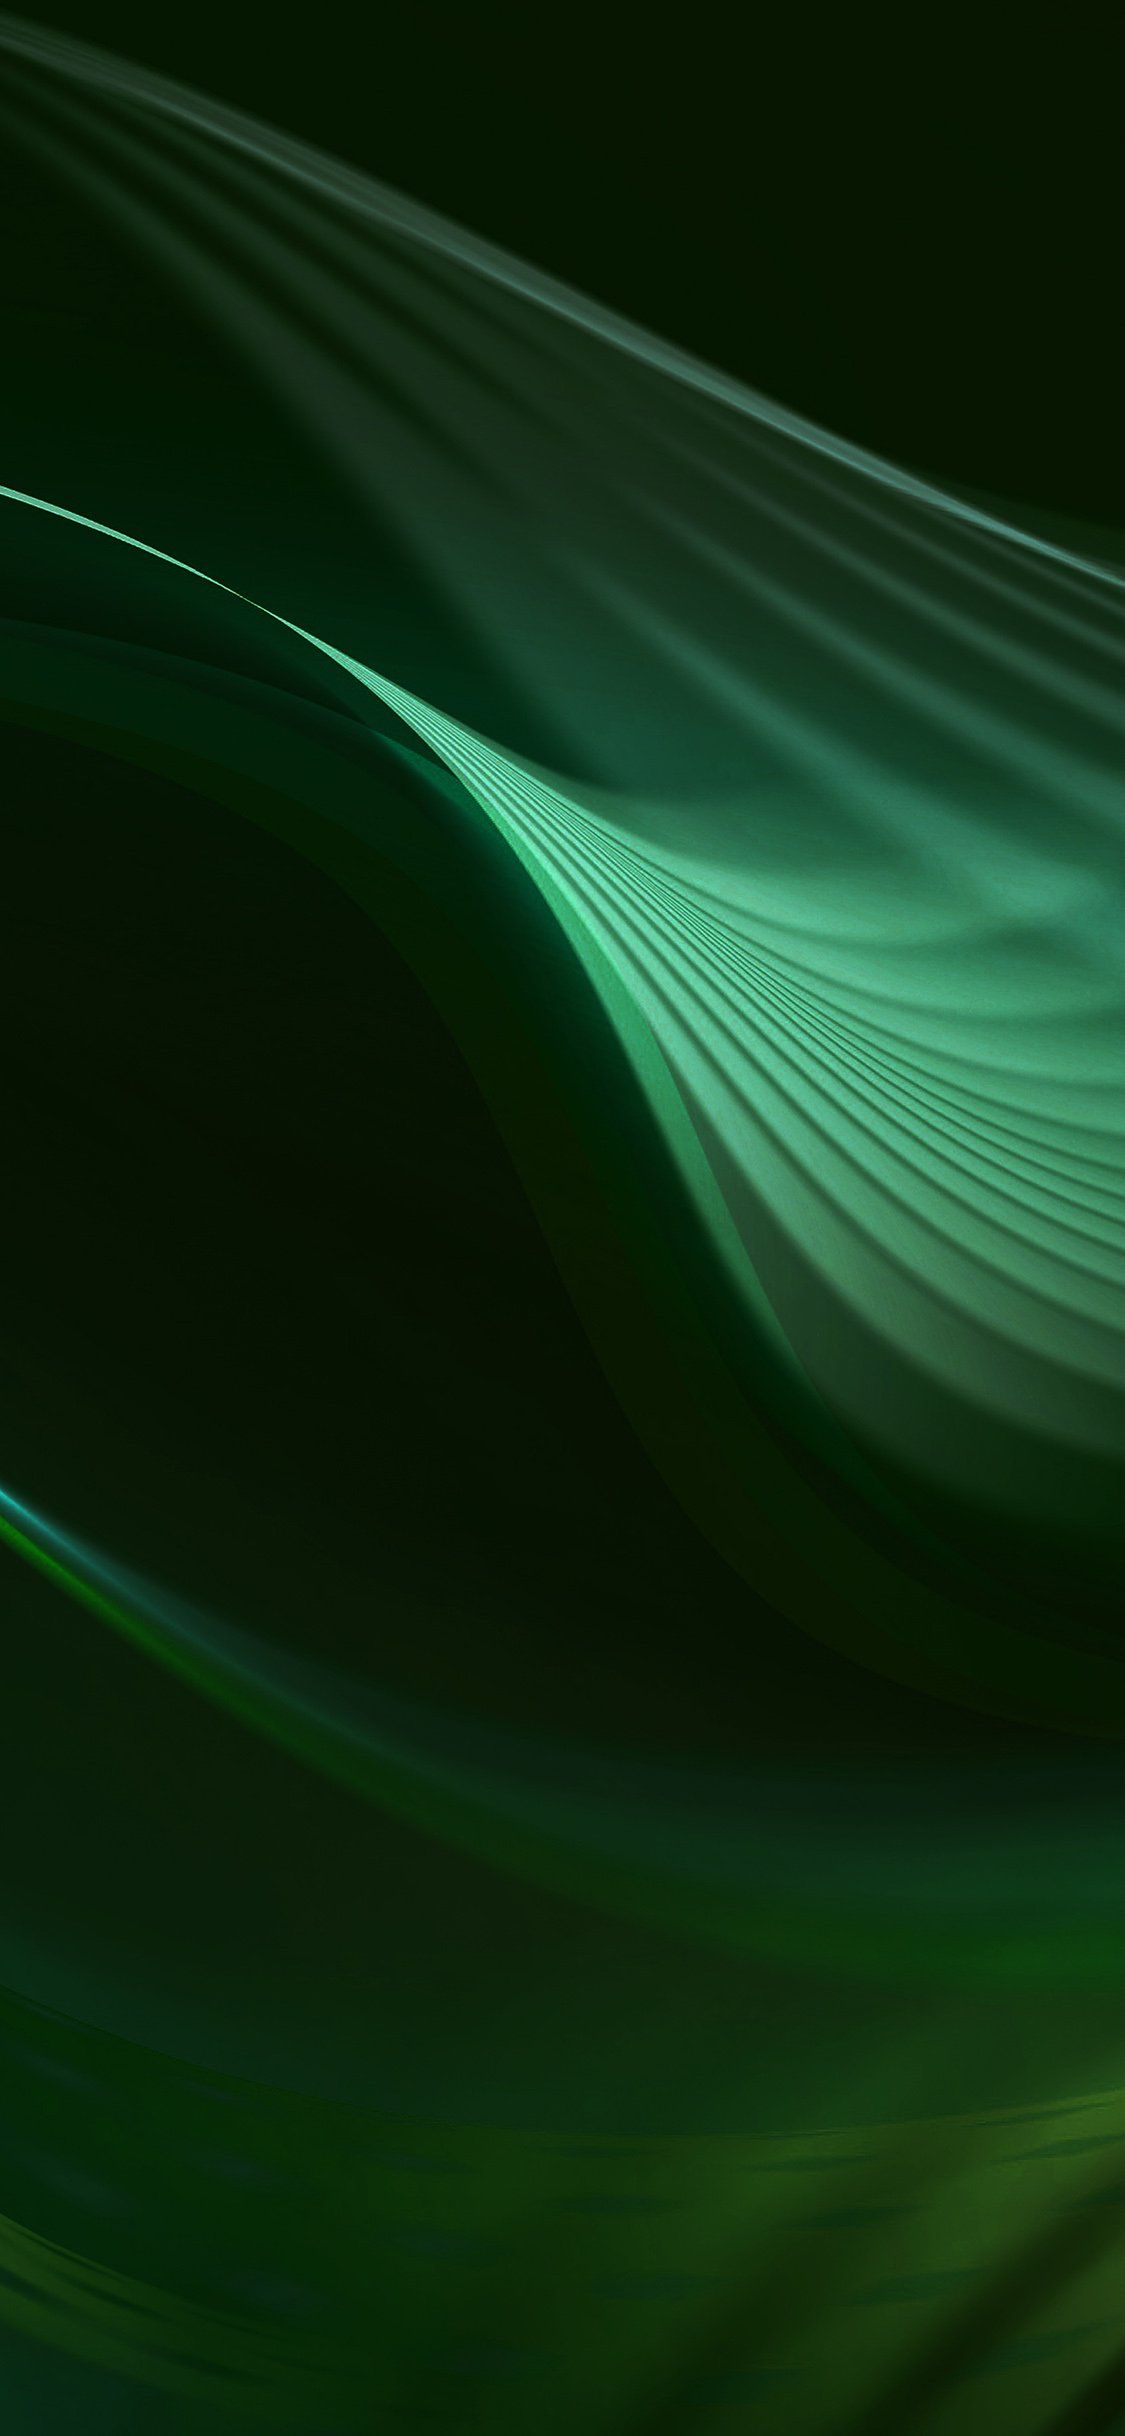 Green Iphone Wallpapers Top Free Green Iphone Backgrounds Wallpaperaccess